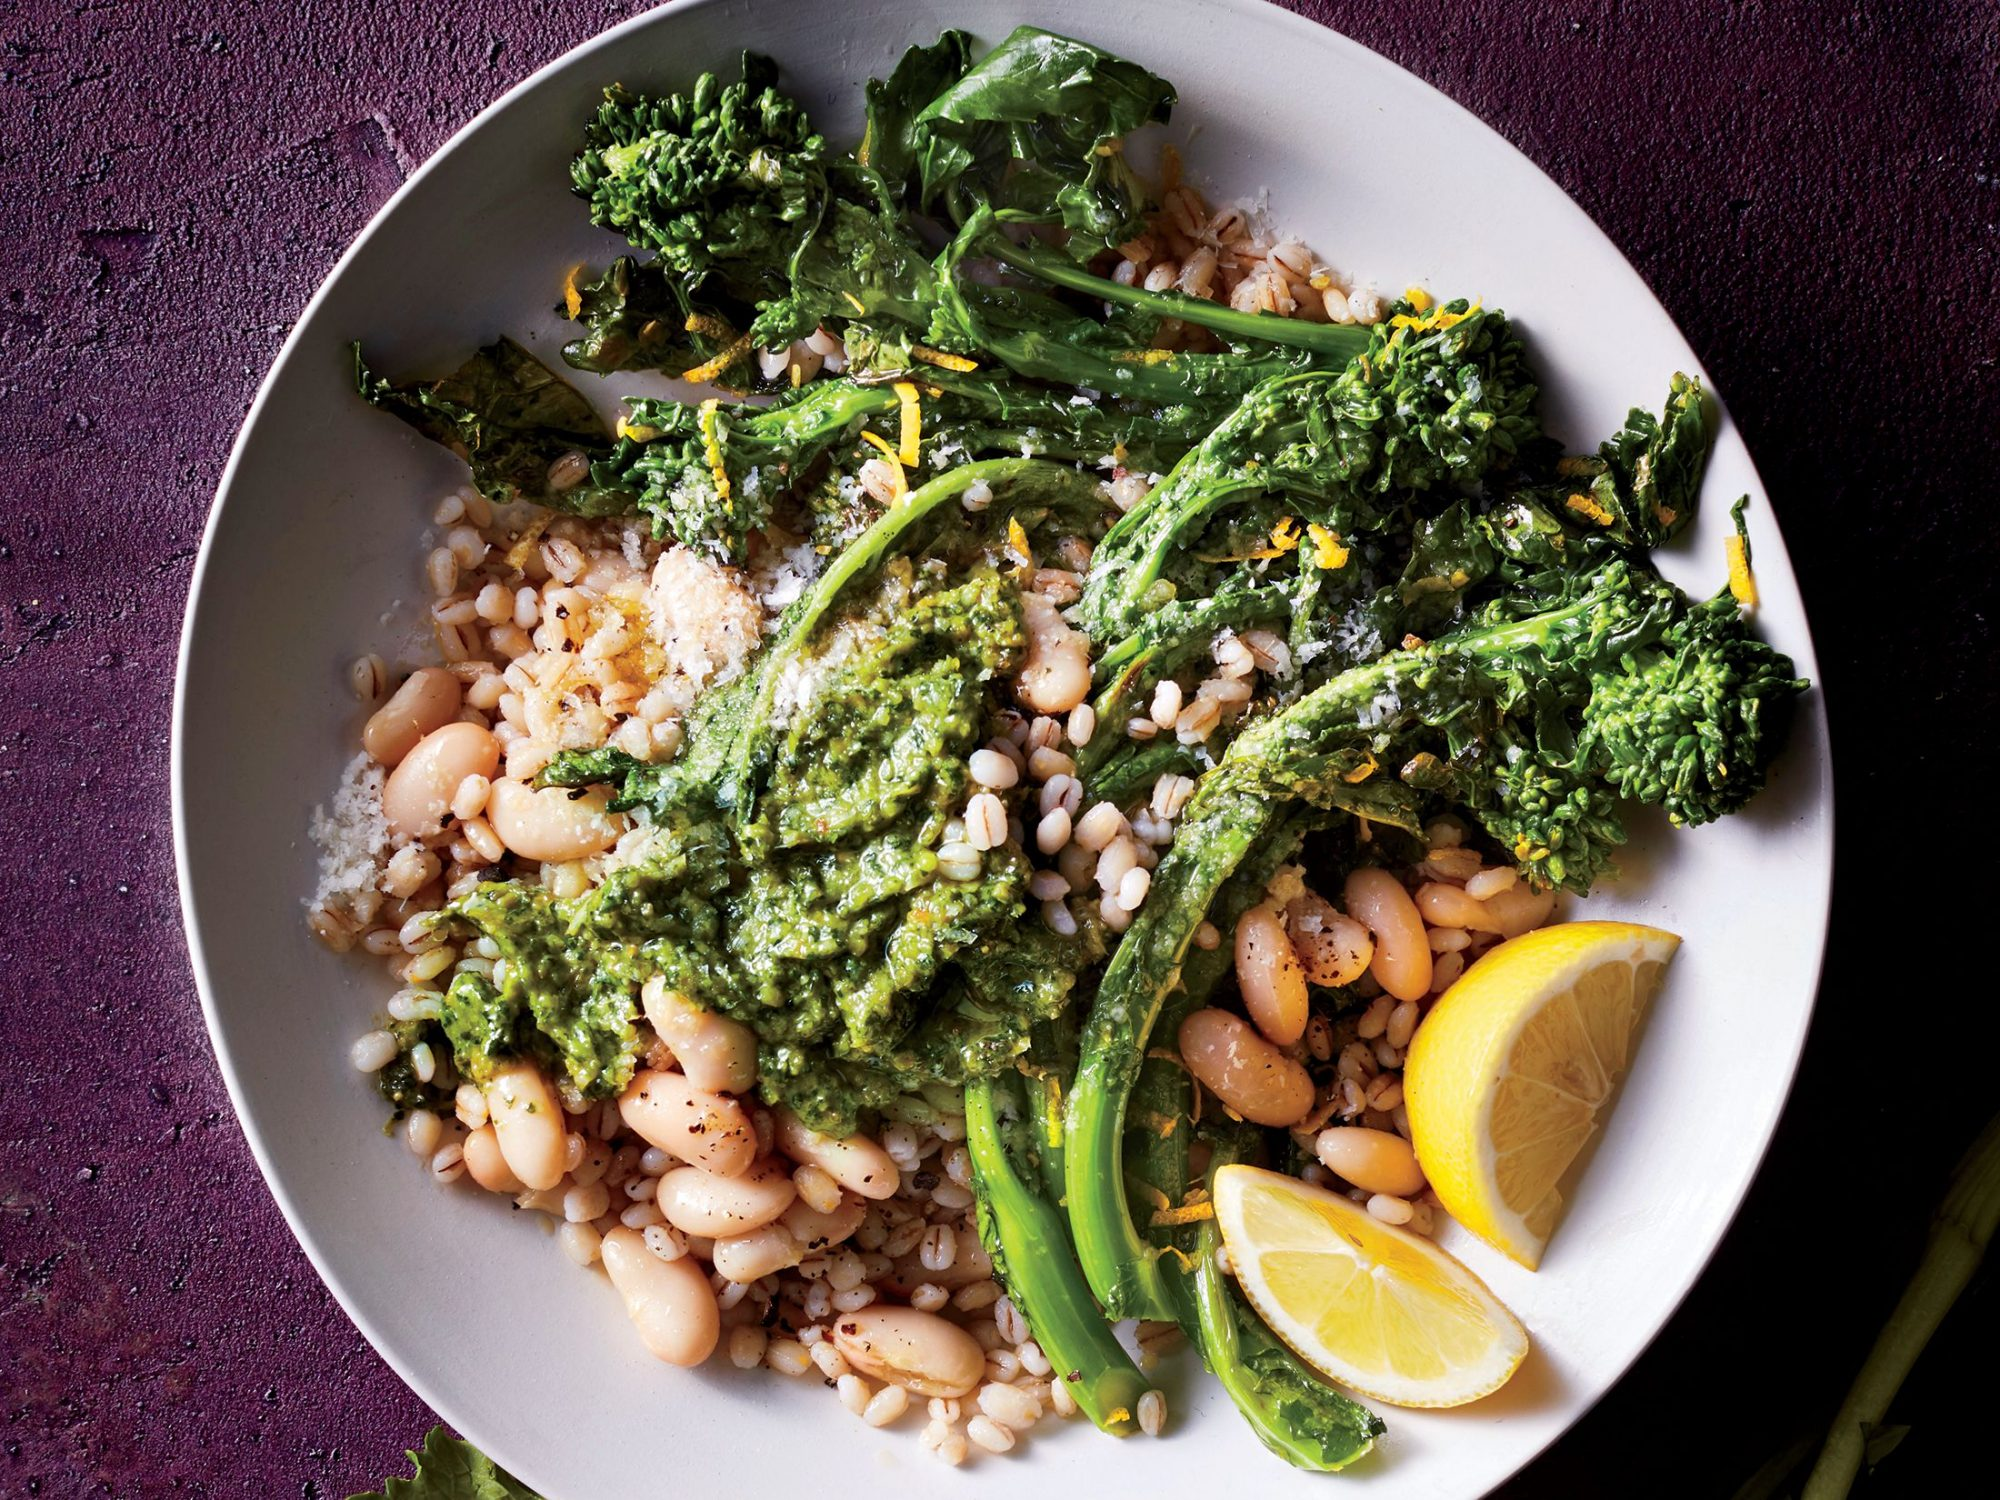 Broccoli Rabe and Barley Bowl with Cilantro Pesto